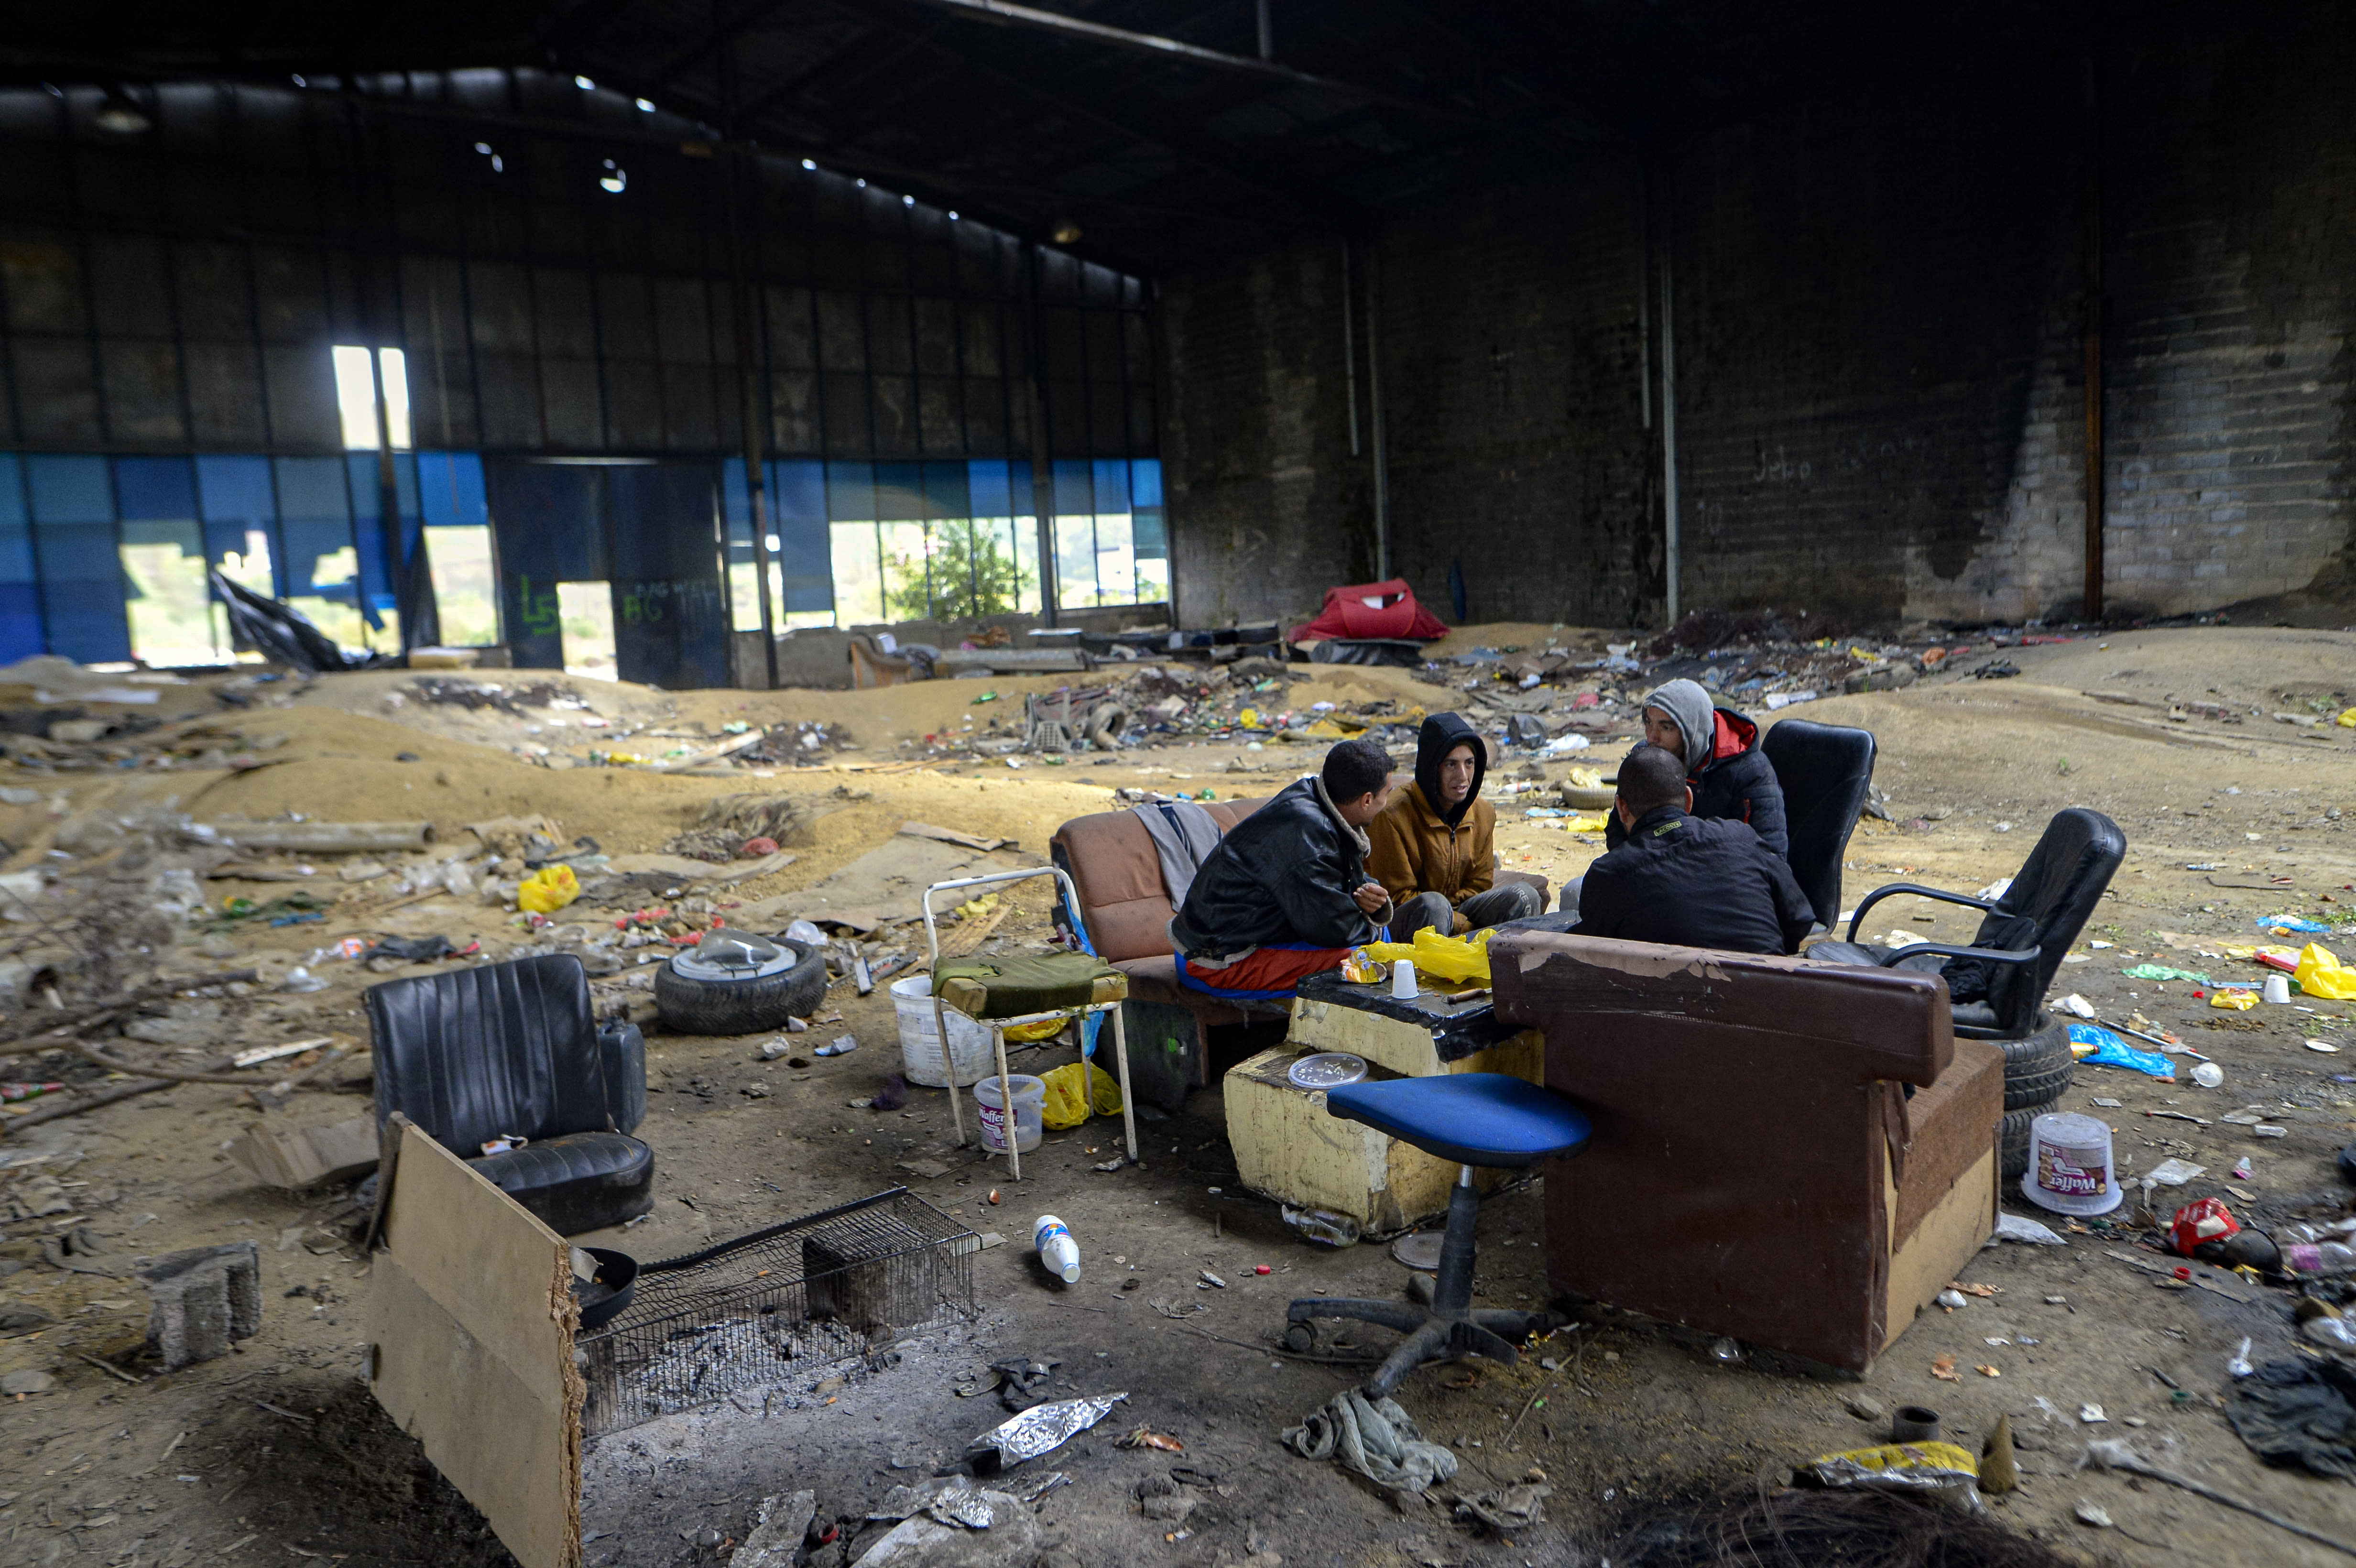 Migrants sit in an abandoned factory outside Velika Kladusa, Bosnia, Saturday, Sept. 26, 2020. Remote woods, abandoned run-down buildings and roadsides on the fringes of northwestern Bosnian towns are steadily filling with makeshift camps where migrants from the Middle East, Asia and North Africa are bracing for more misery as autumn's chill and rains set it. (AP Photo/Kemal Softic)